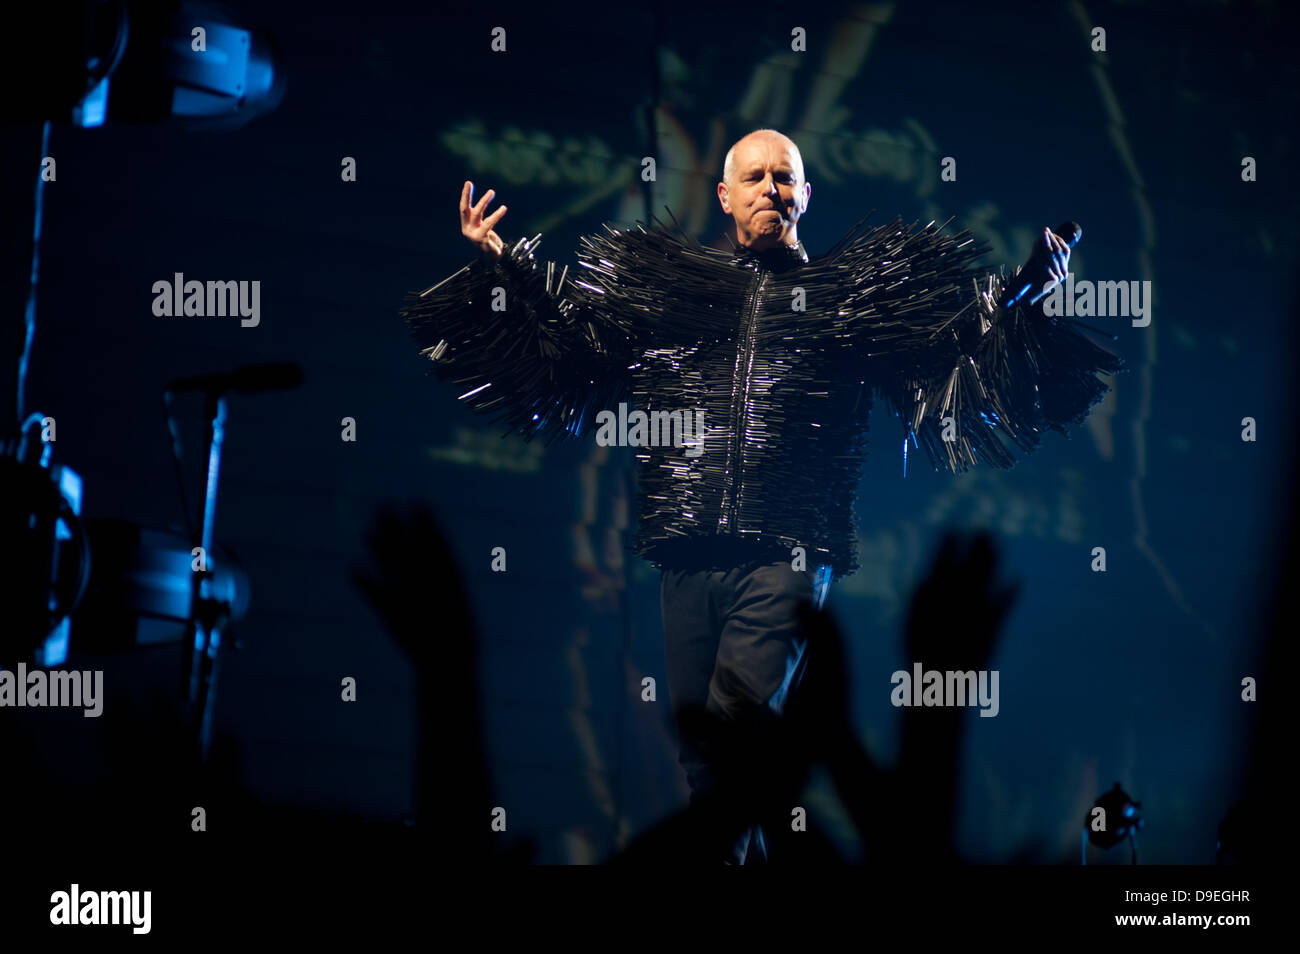 London, UK – 18 June 2013: Pet Shop Boys perform live at the O2 Arena in London - Stock Image